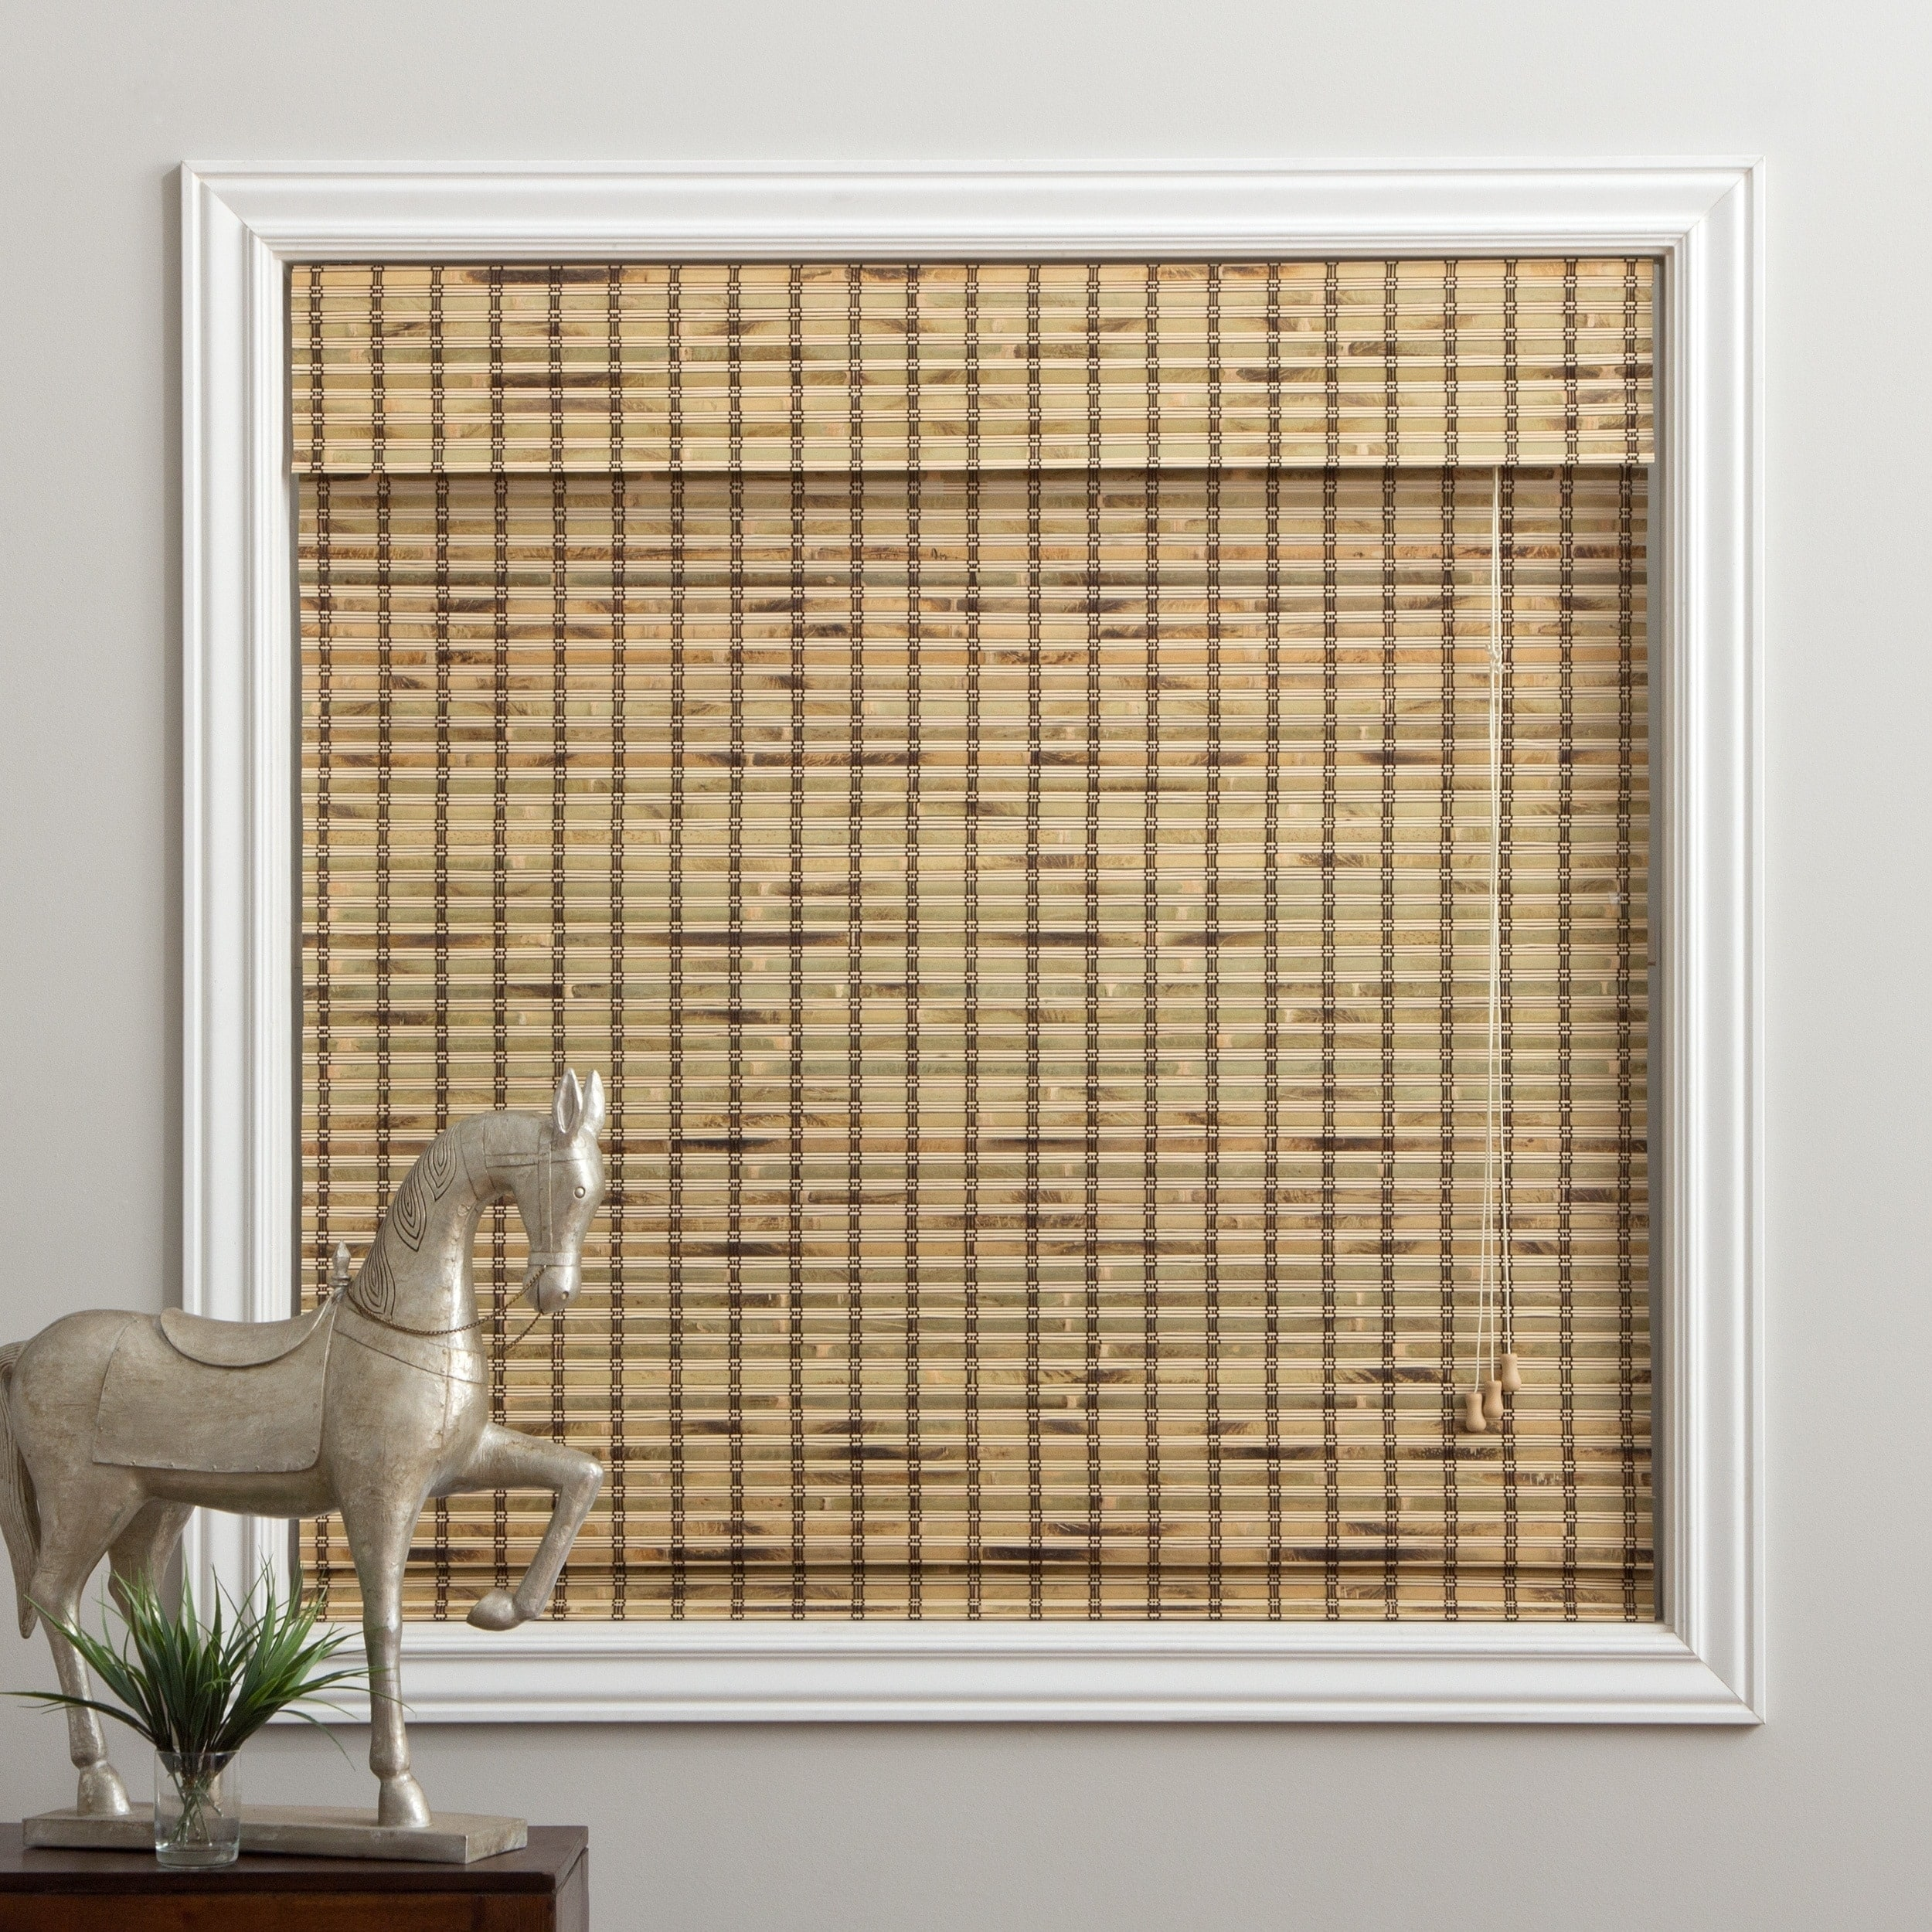 windows blinds bambooblinds diy menards for ideas patio bamboo club and of solar page outdoor lowes more blind luxury window